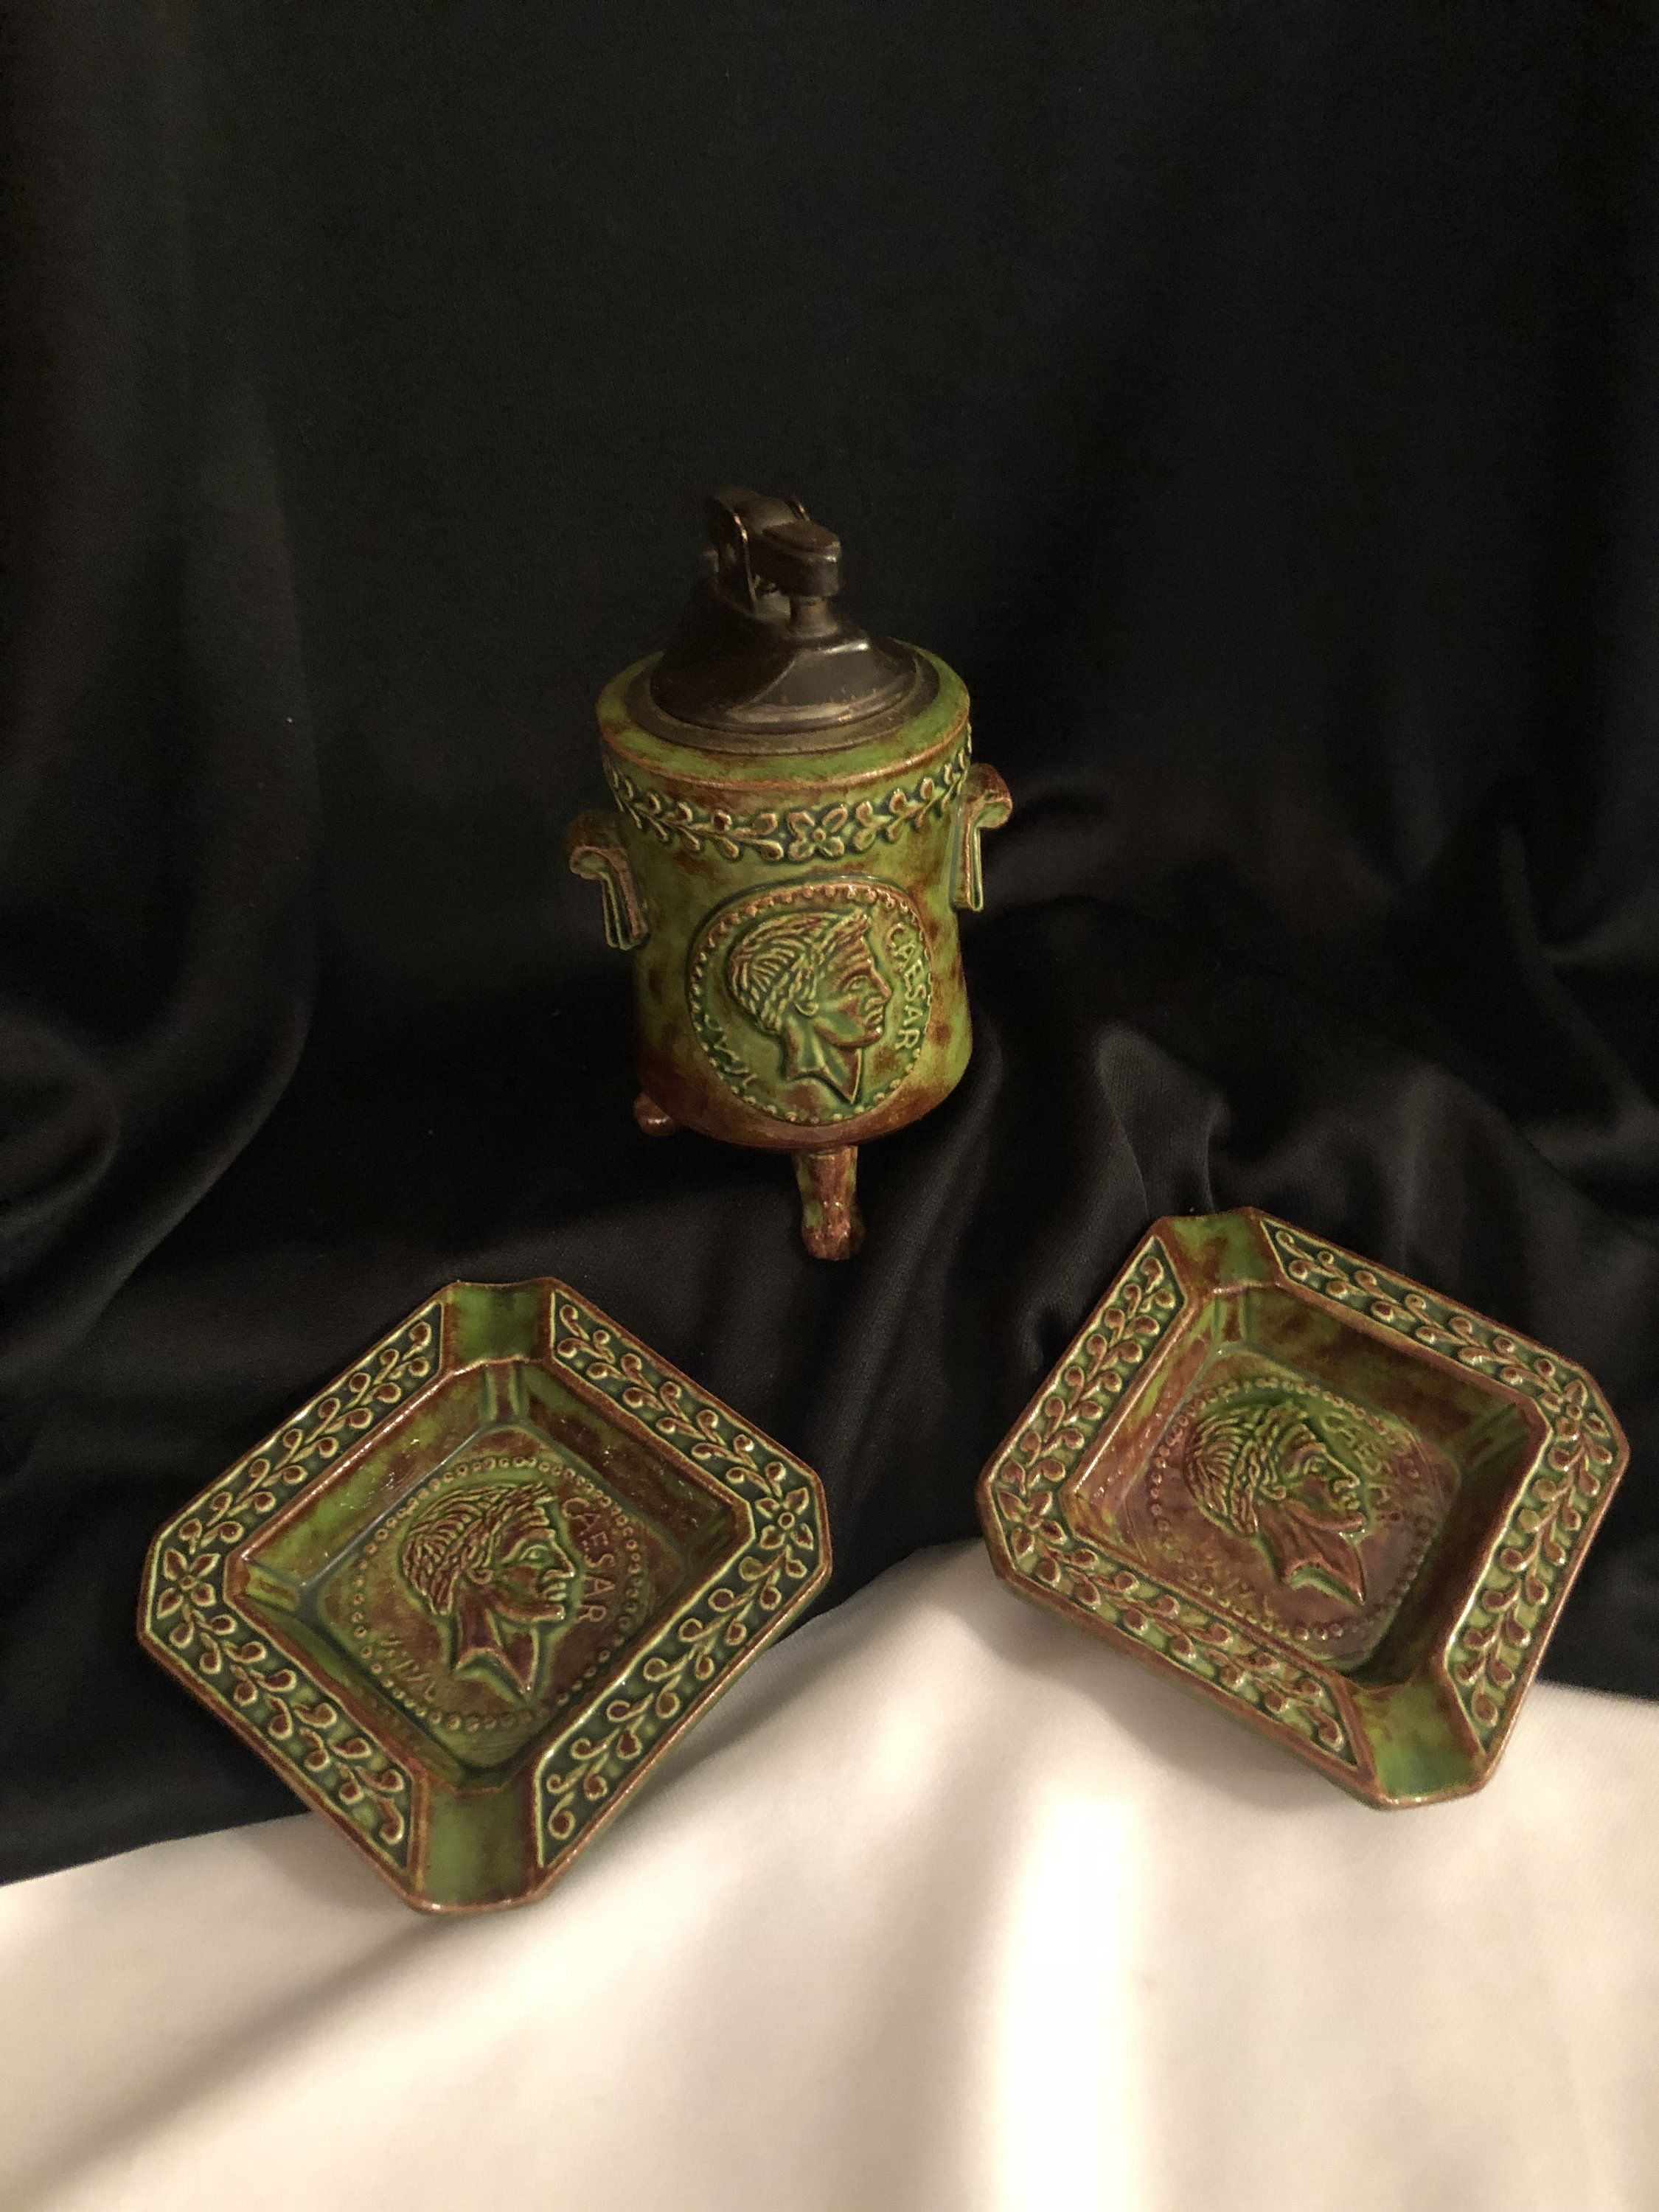 Vintage Ceramic Table Lighter with 2 Ashtrays with Caesar Profile by